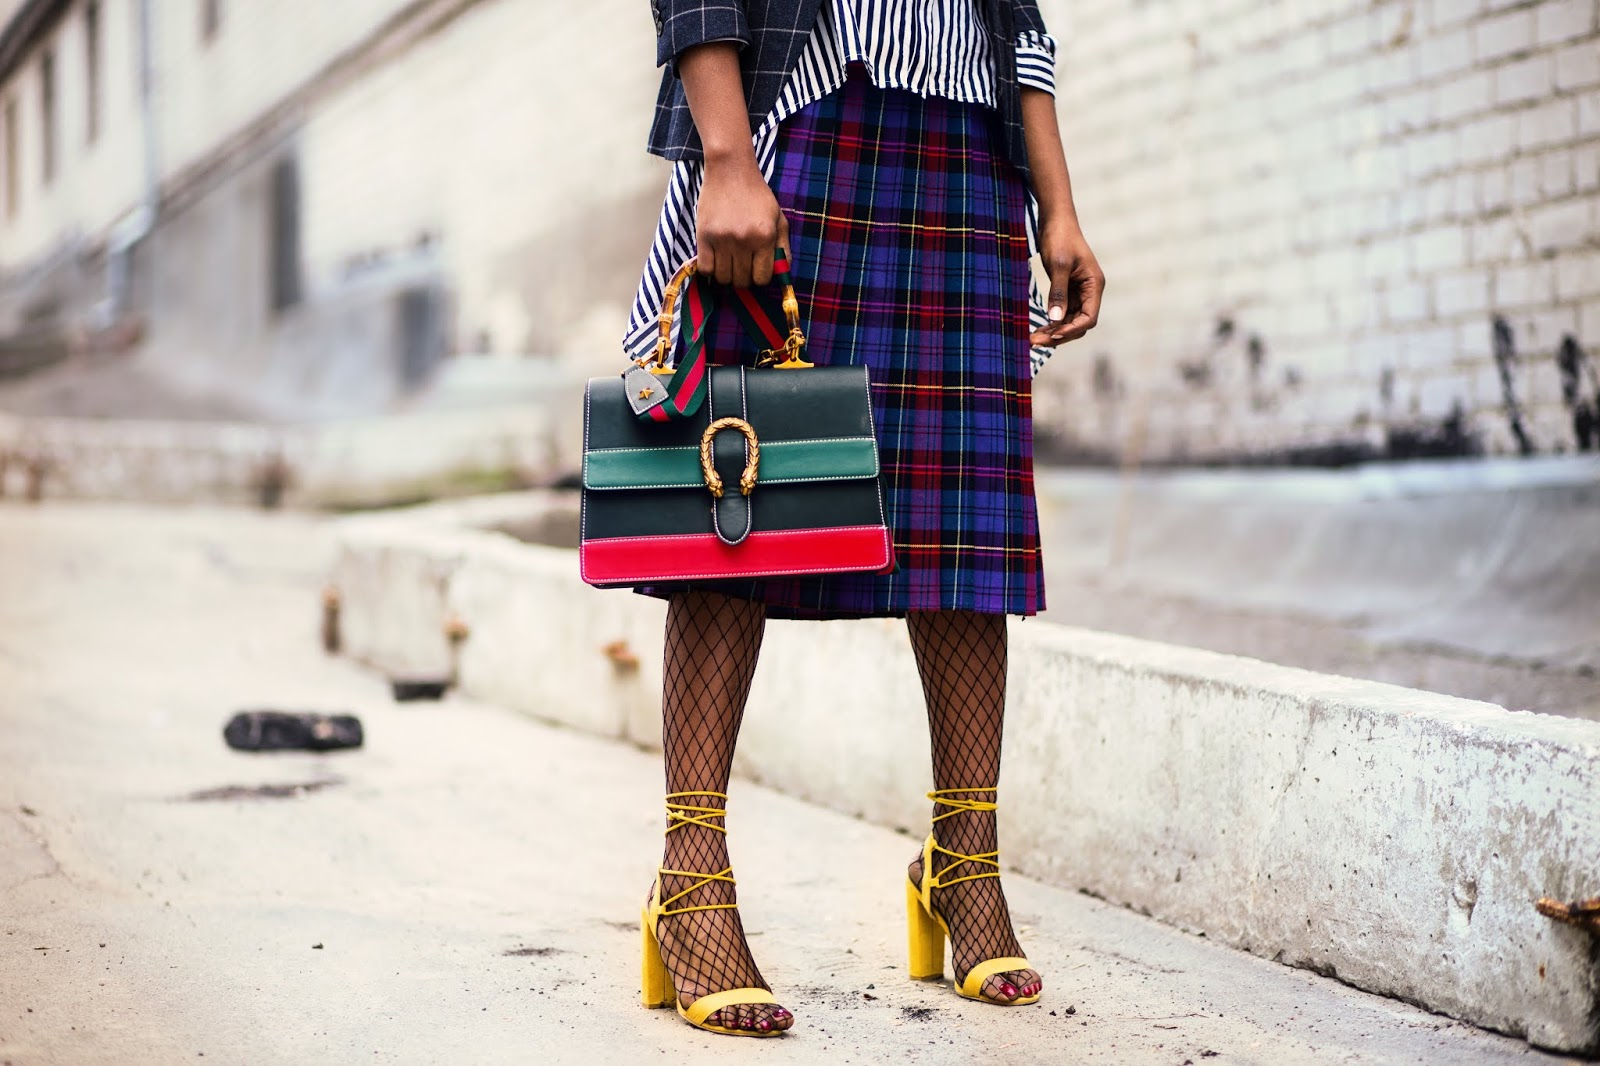 Paris Fashion Week Highlights | Fashion And Celebrity Gossip From The World's Most Famous Catwalks 3